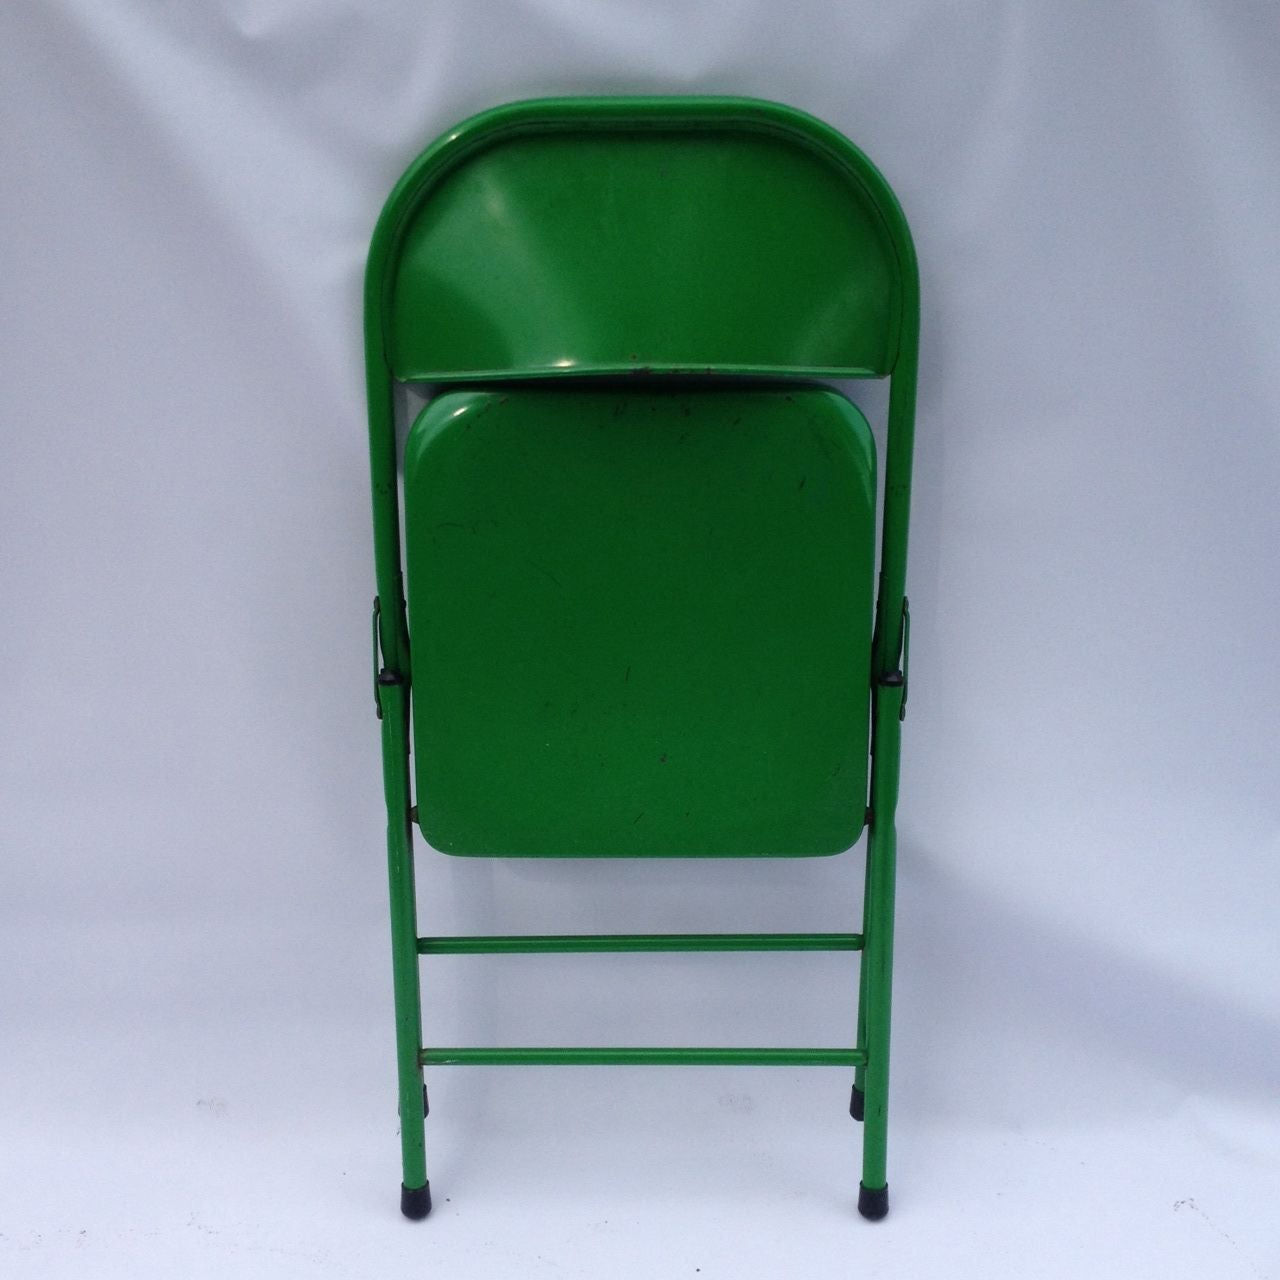 Genial Mid Century Kelly Green Chair   Image 5 Of 5